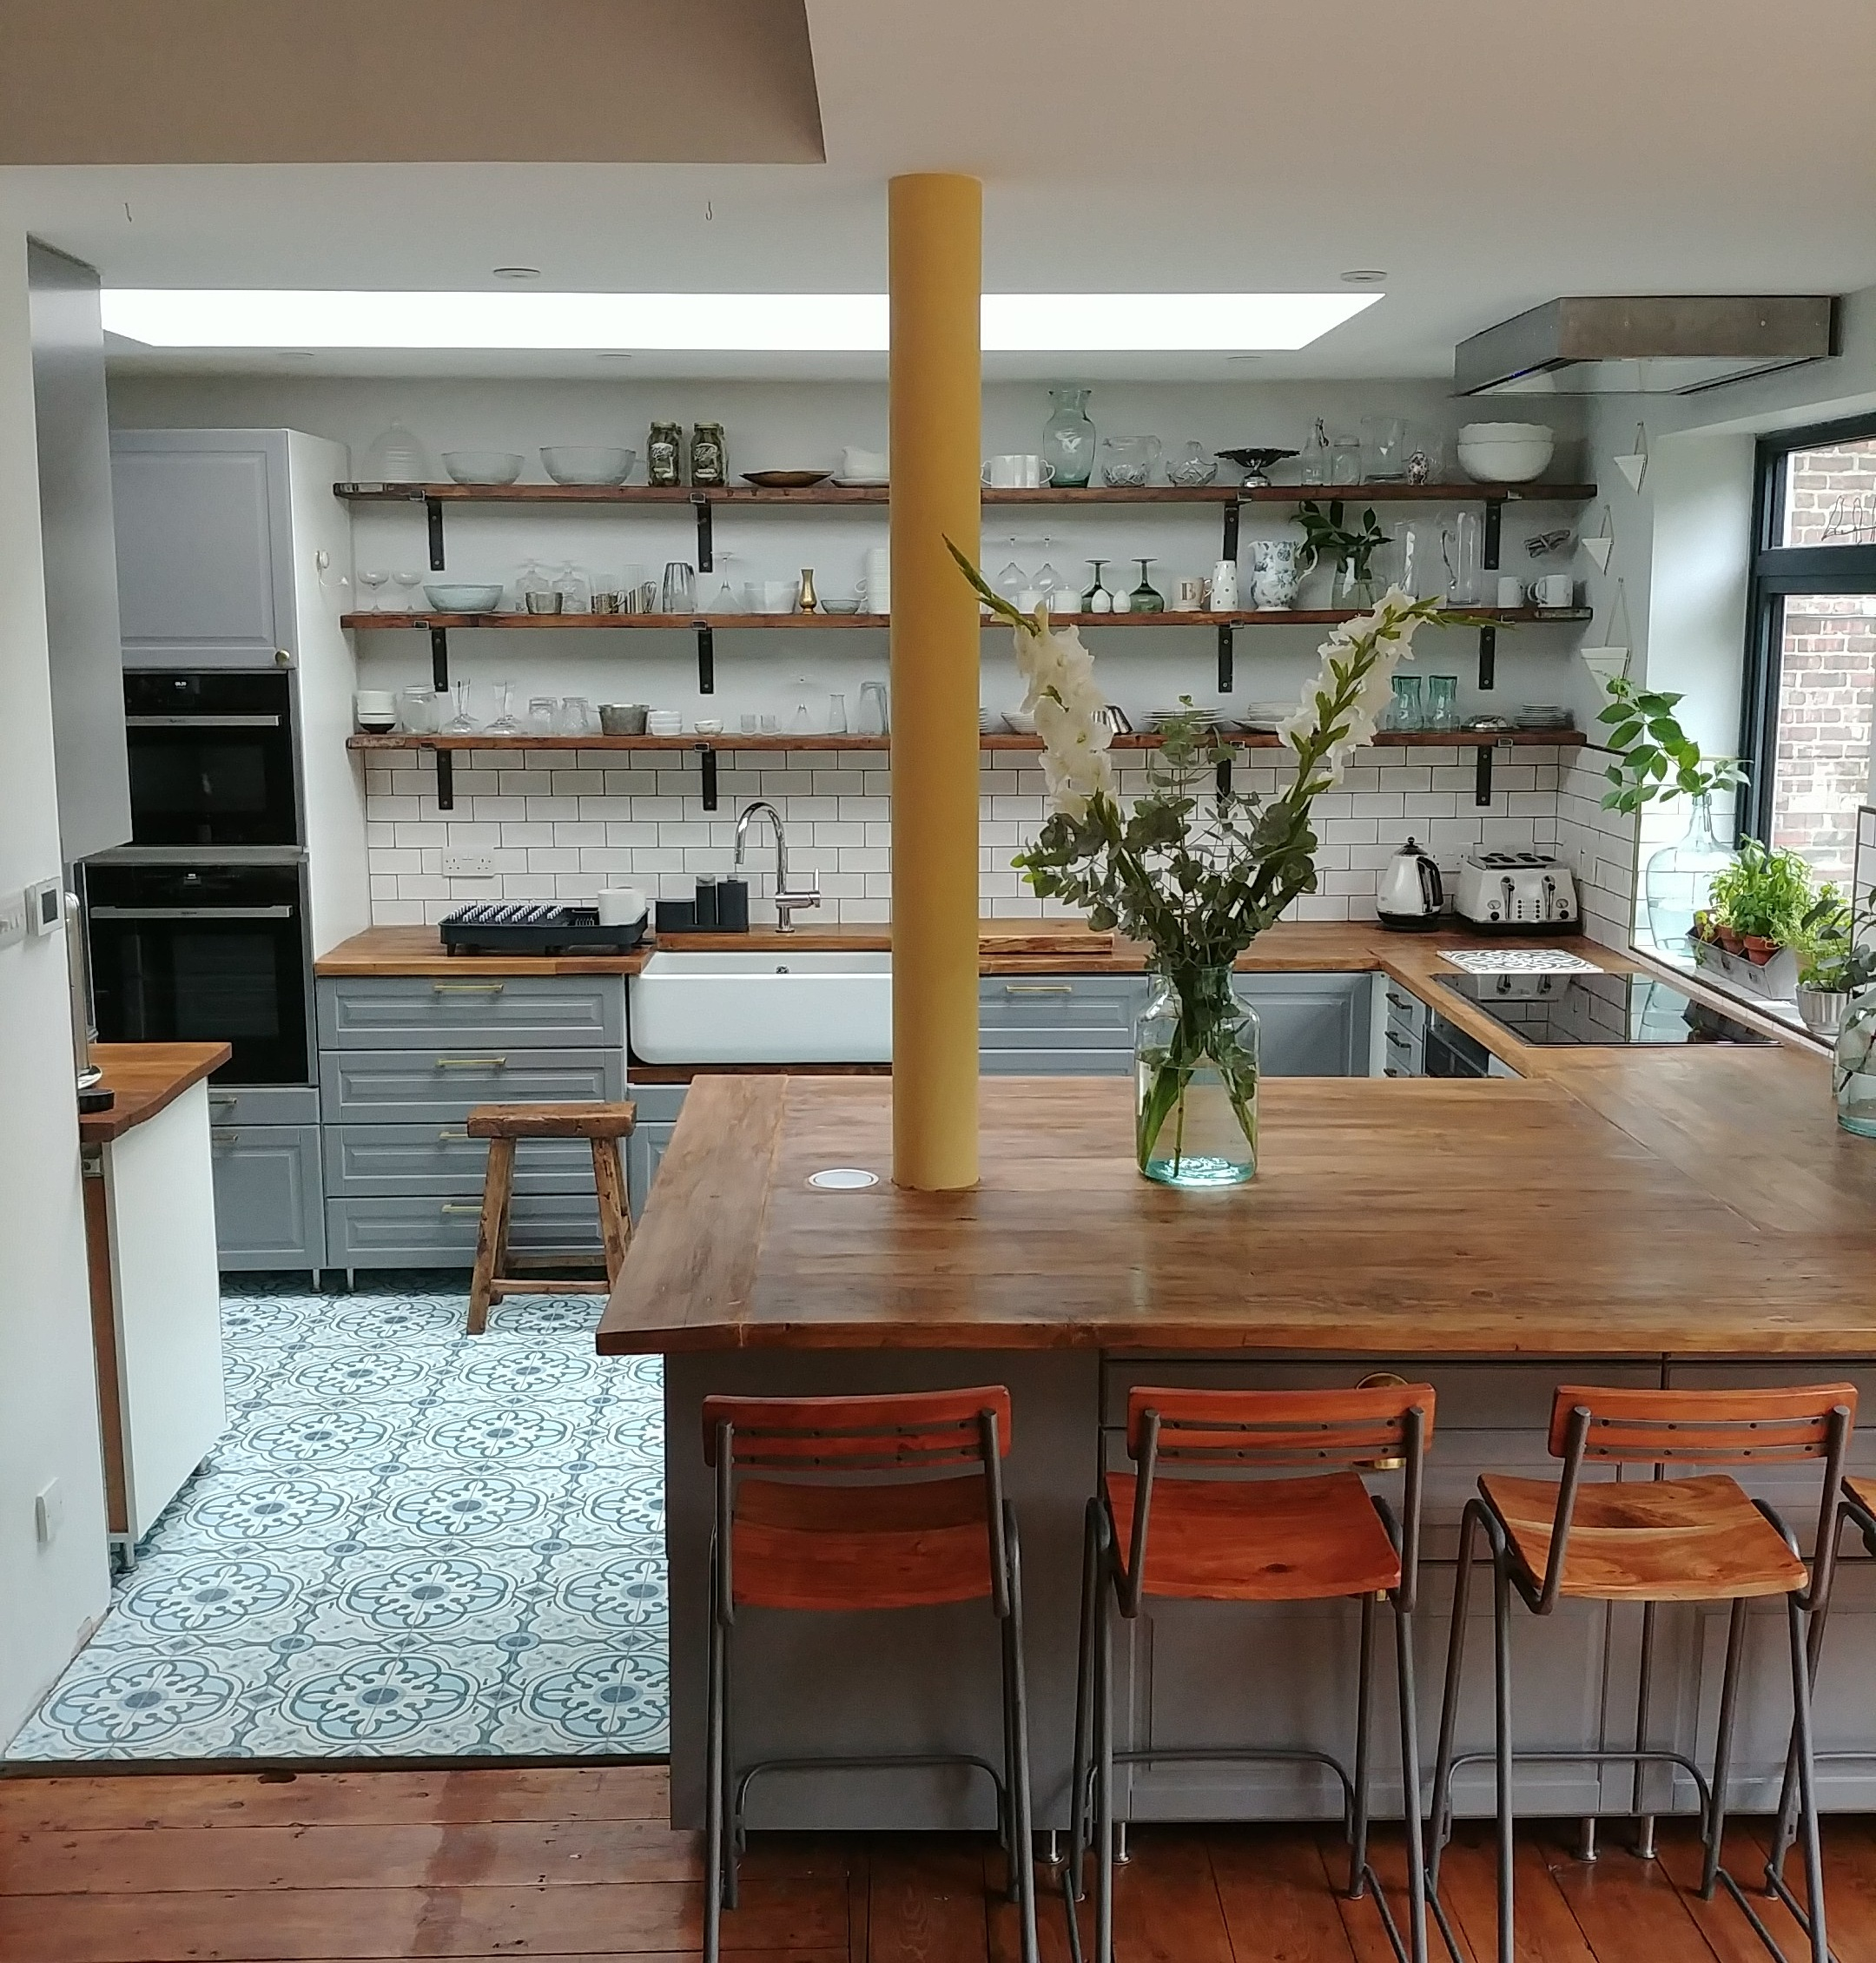 STN-Kitchen-DIY-Rustic-Scaffold-Board-Shelves